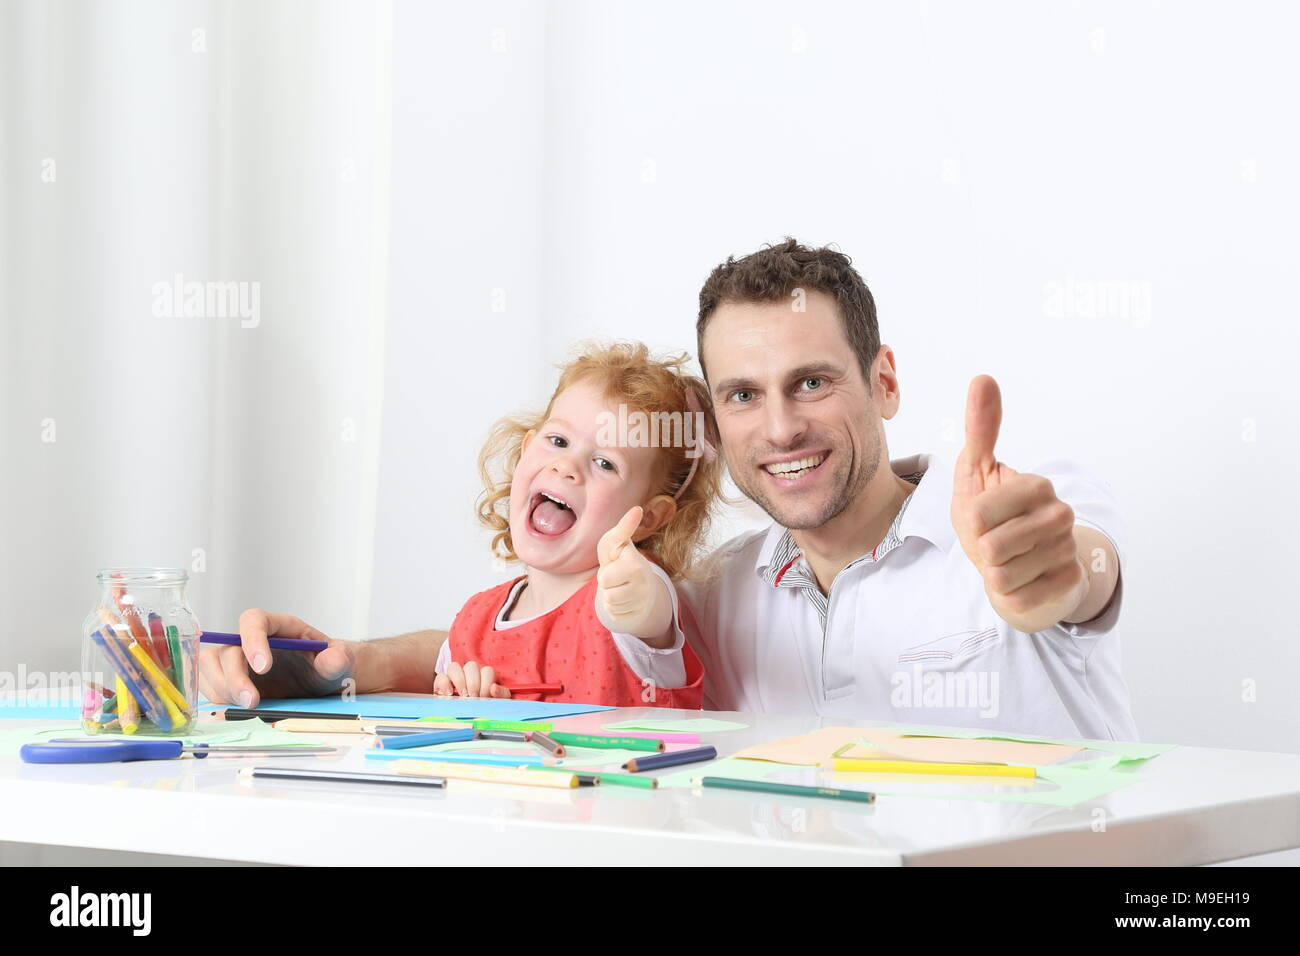 A Dad or father with child or daughter painting thumbs up - Stock Image